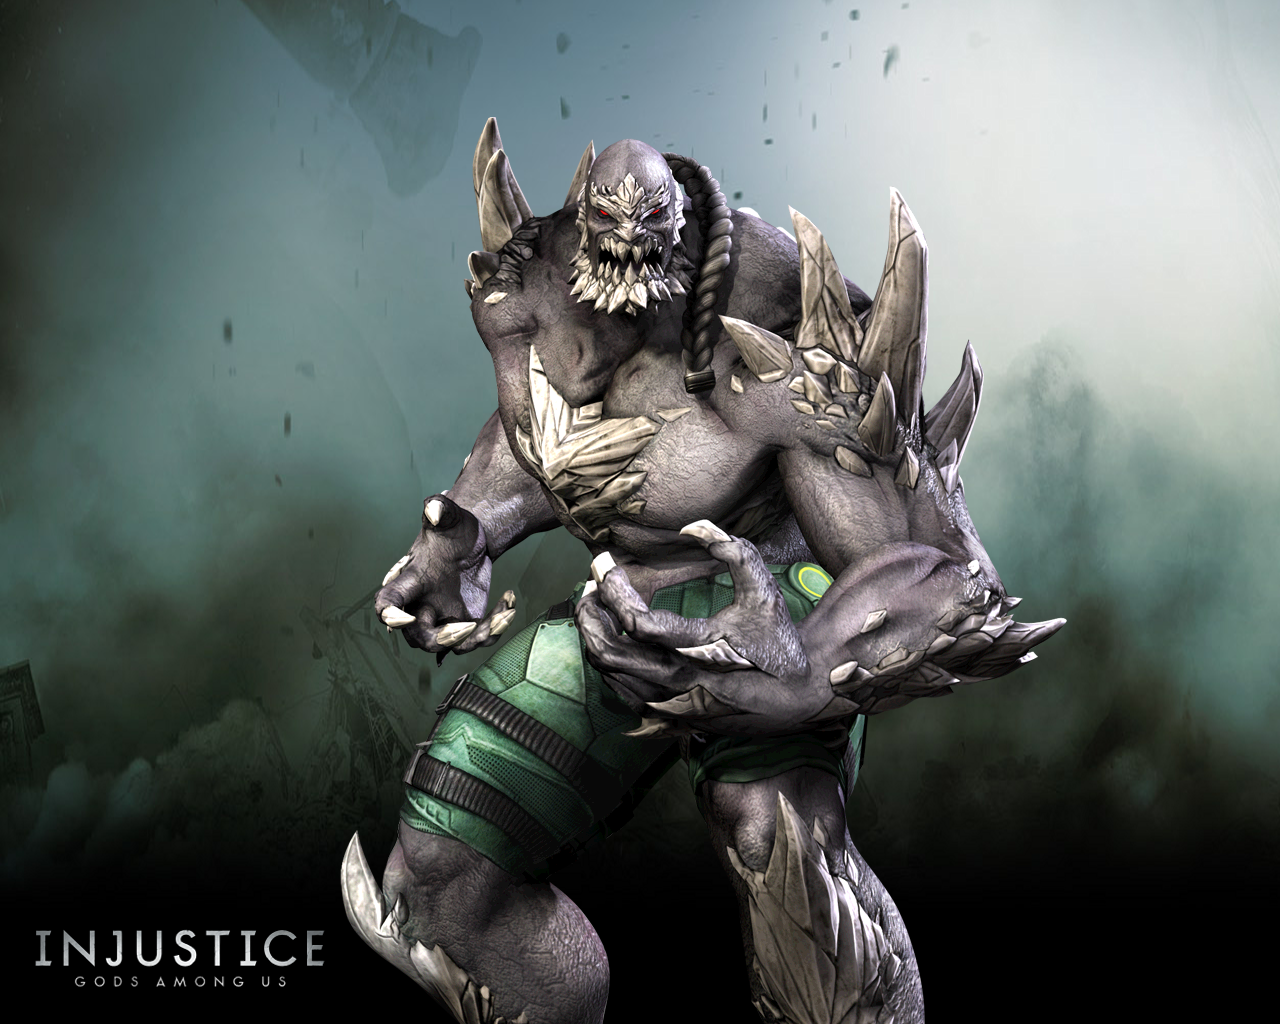 Game art x injustice gods among us wallpapers injustice gods among us wallpaper voltagebd Images